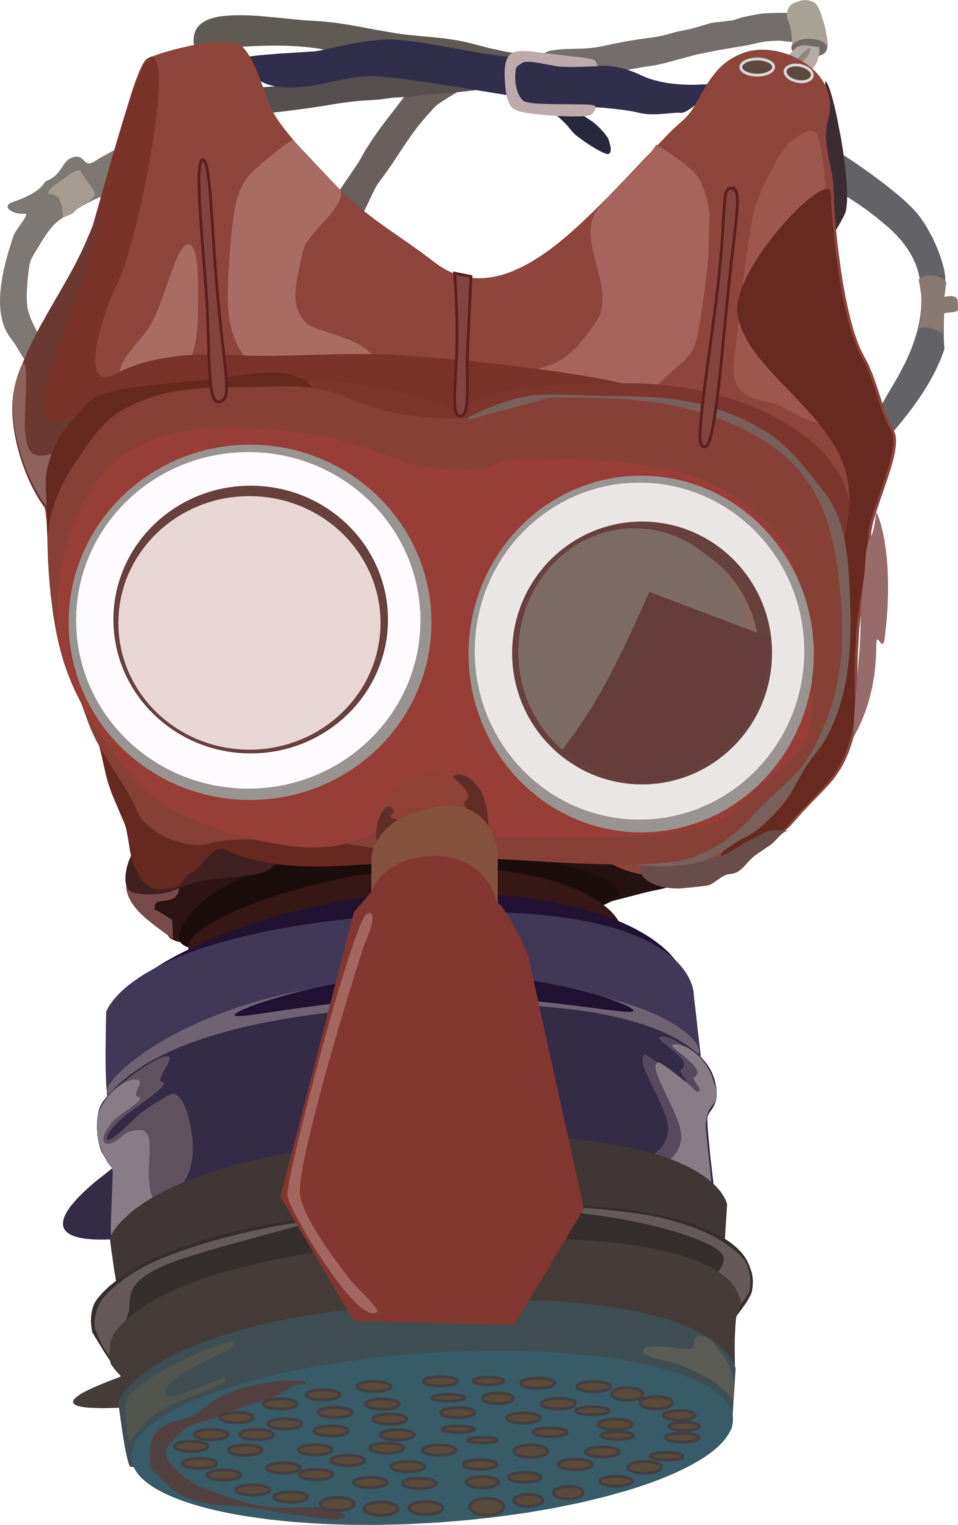 Public domain clip art. Mask clipart gas mask